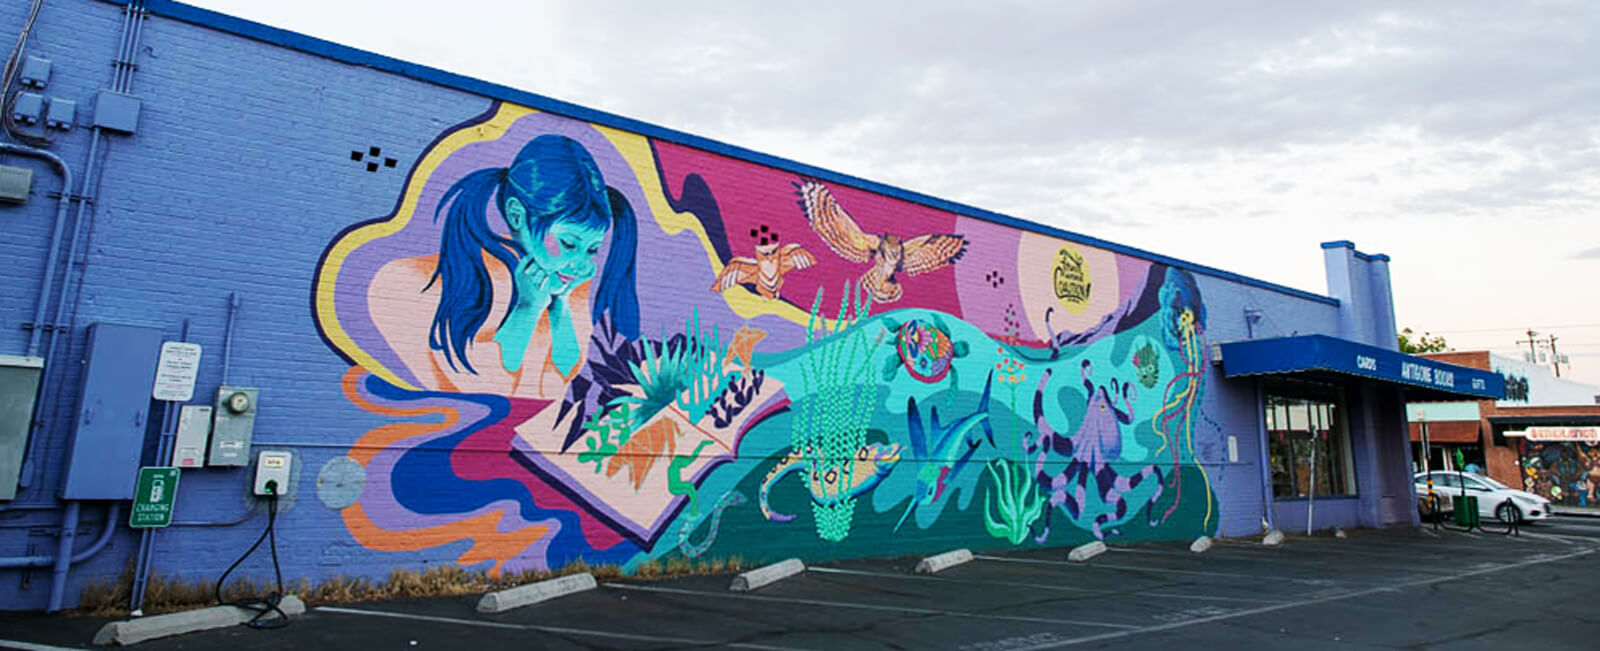 A colorful mural of a young girl reading books.